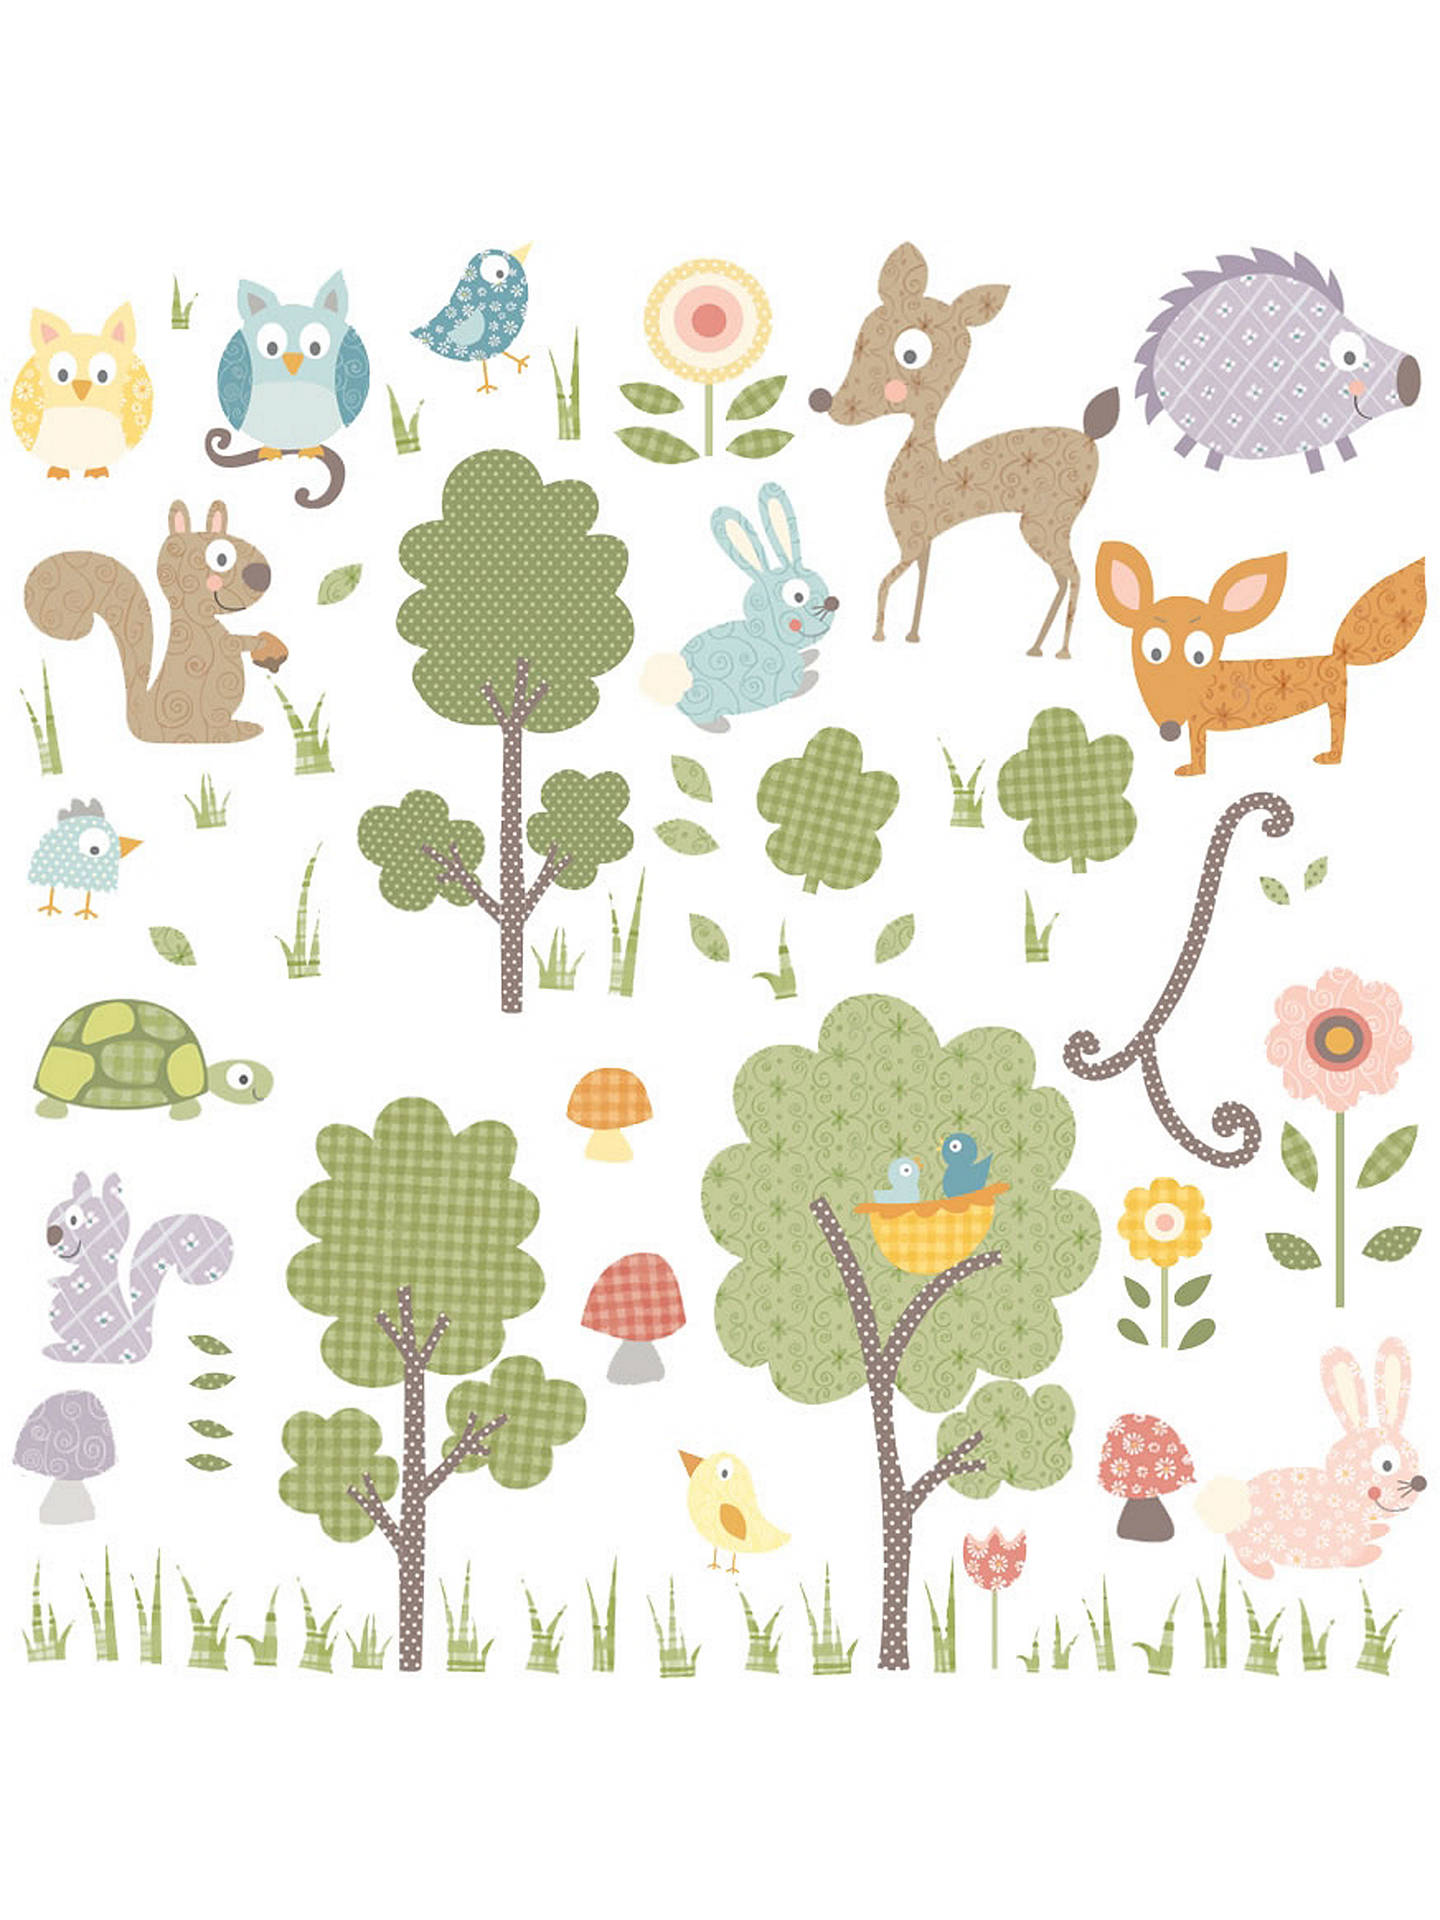 BuyJomoval Woodland Creatures Wall Stickers Online at johnlewis.com Jomoval John Lewis \u0026 Partners